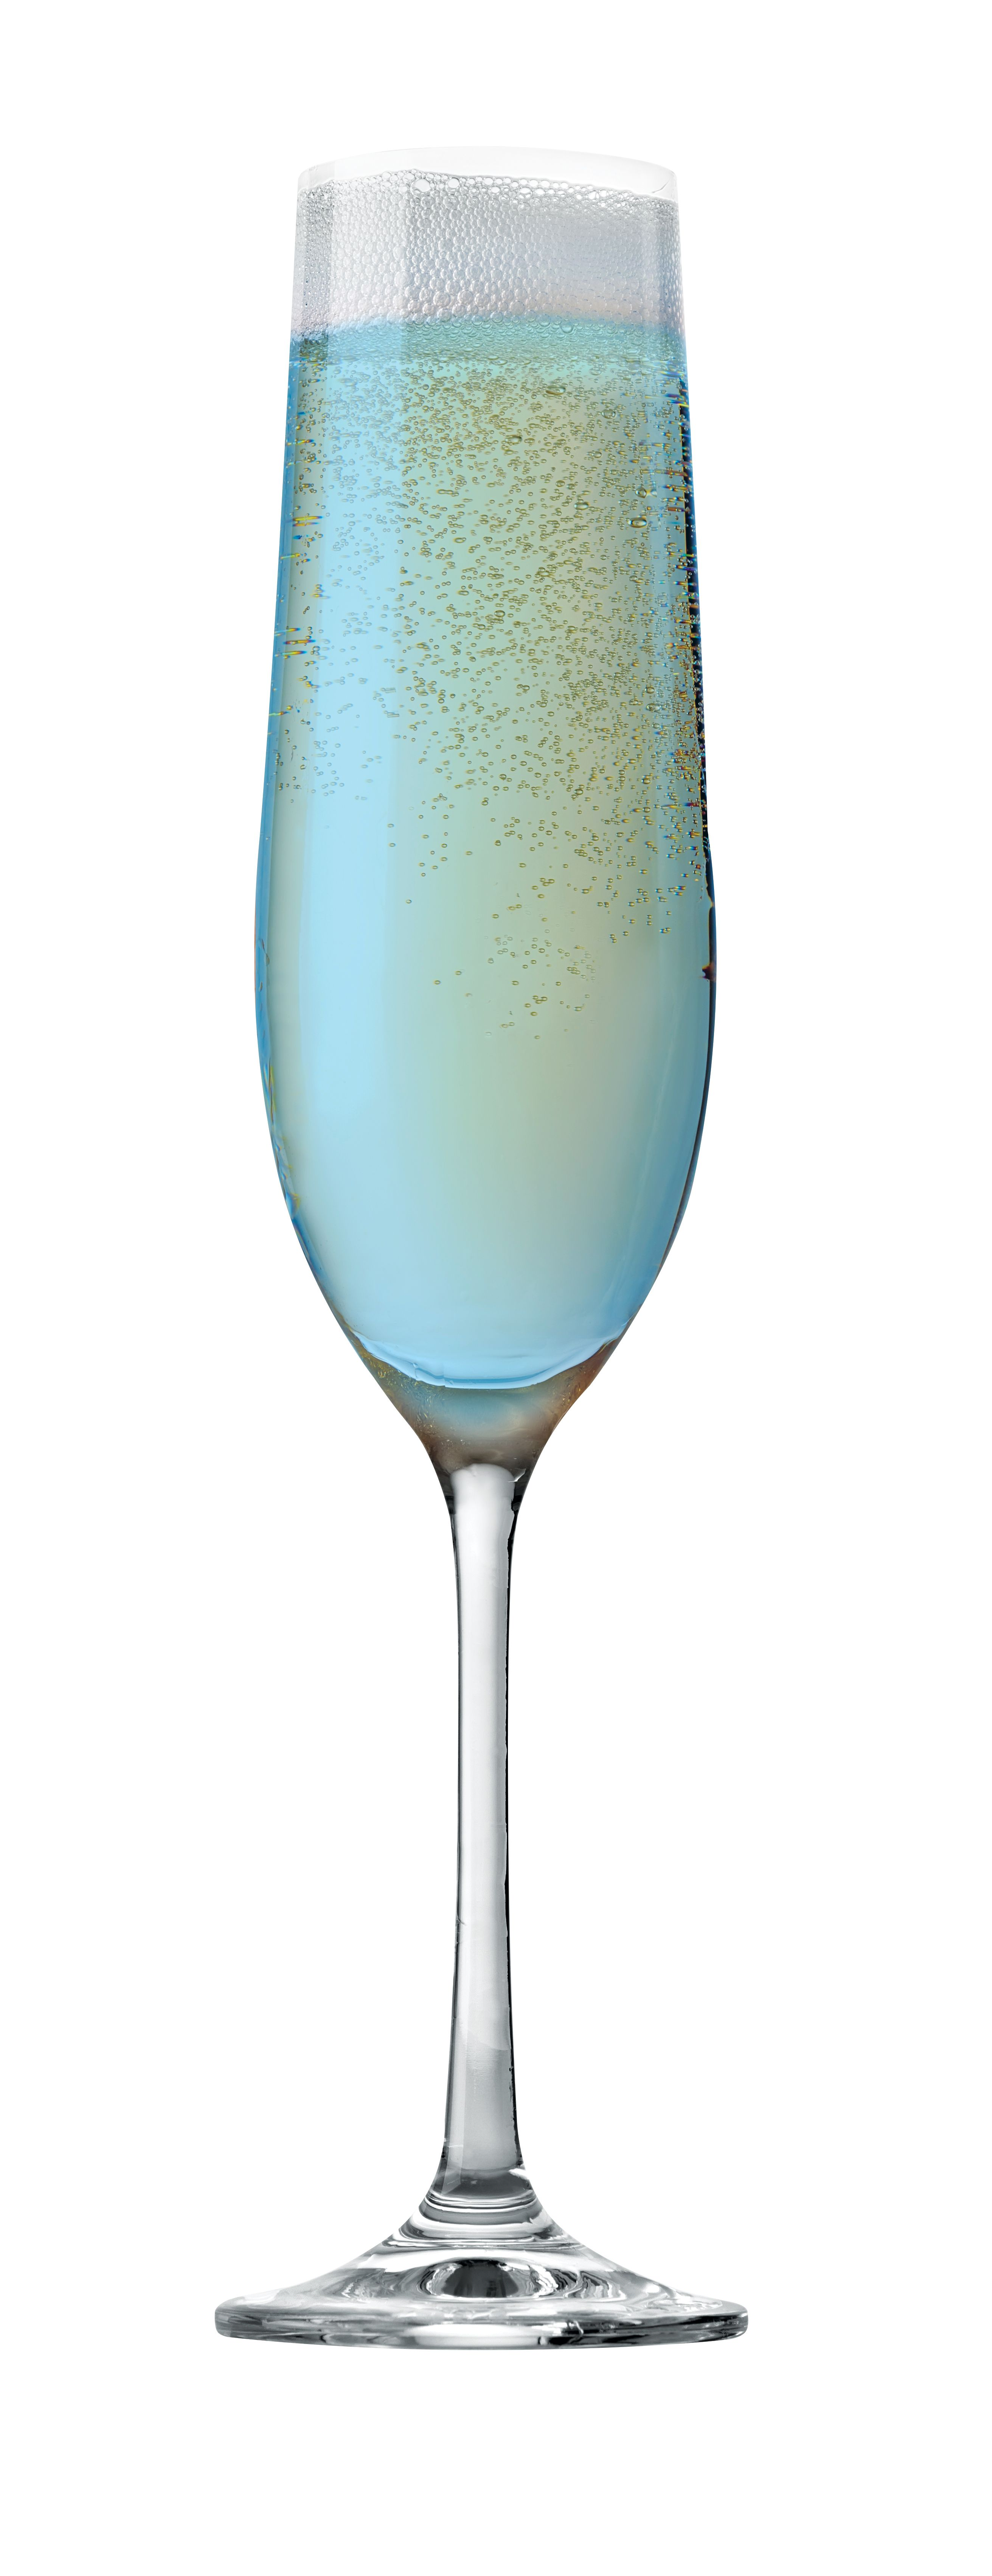 Lost in Love: 2 oz. Kinky Blue Liqueur, 1 oz. Caravella Limoncello, Barefoot Bubbly Prosecco. Chill all ingredients, then pour into a Champagne flute; stir gently.